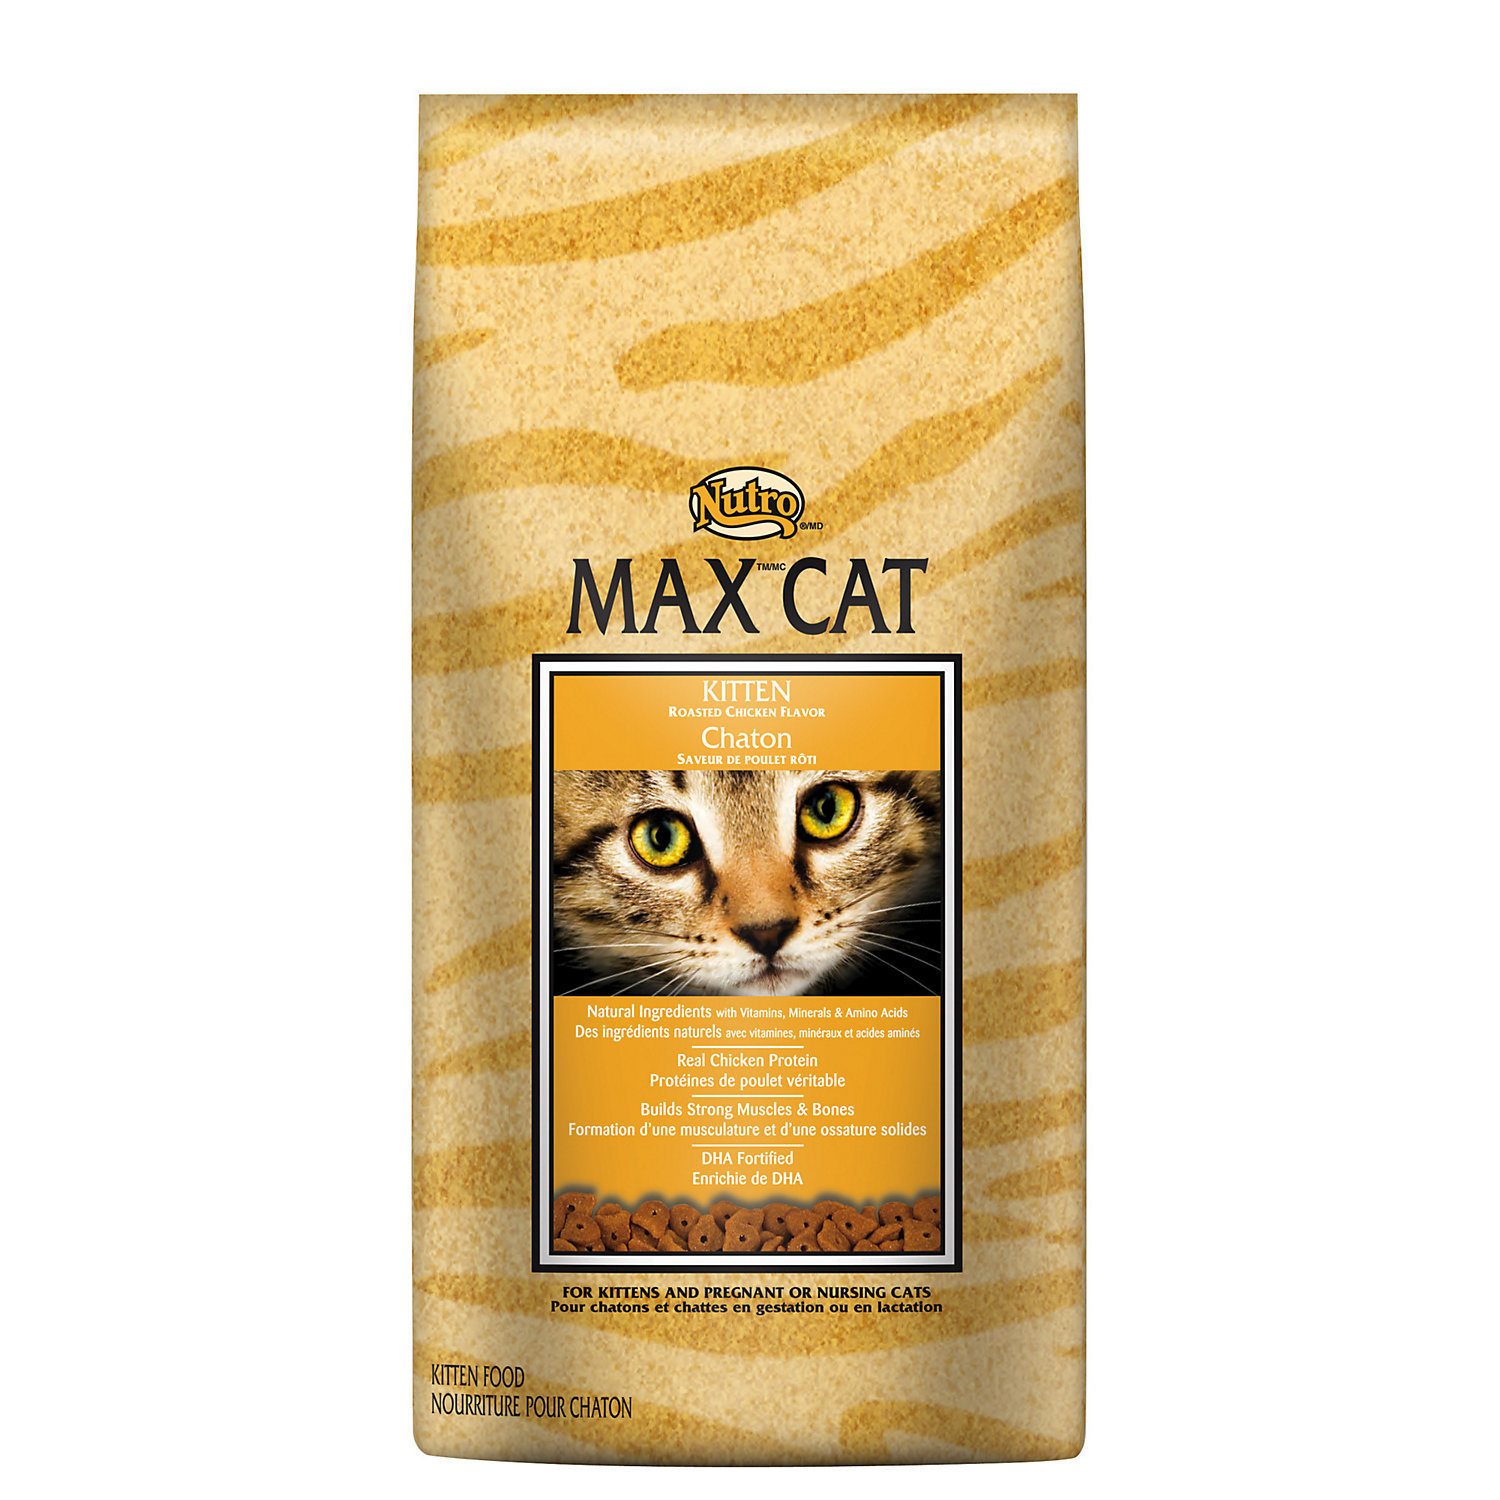 Nutro MAX CAT Kitten Food - Roasted Chicken Flavor 6 lbs. (4/19) (A.K5)